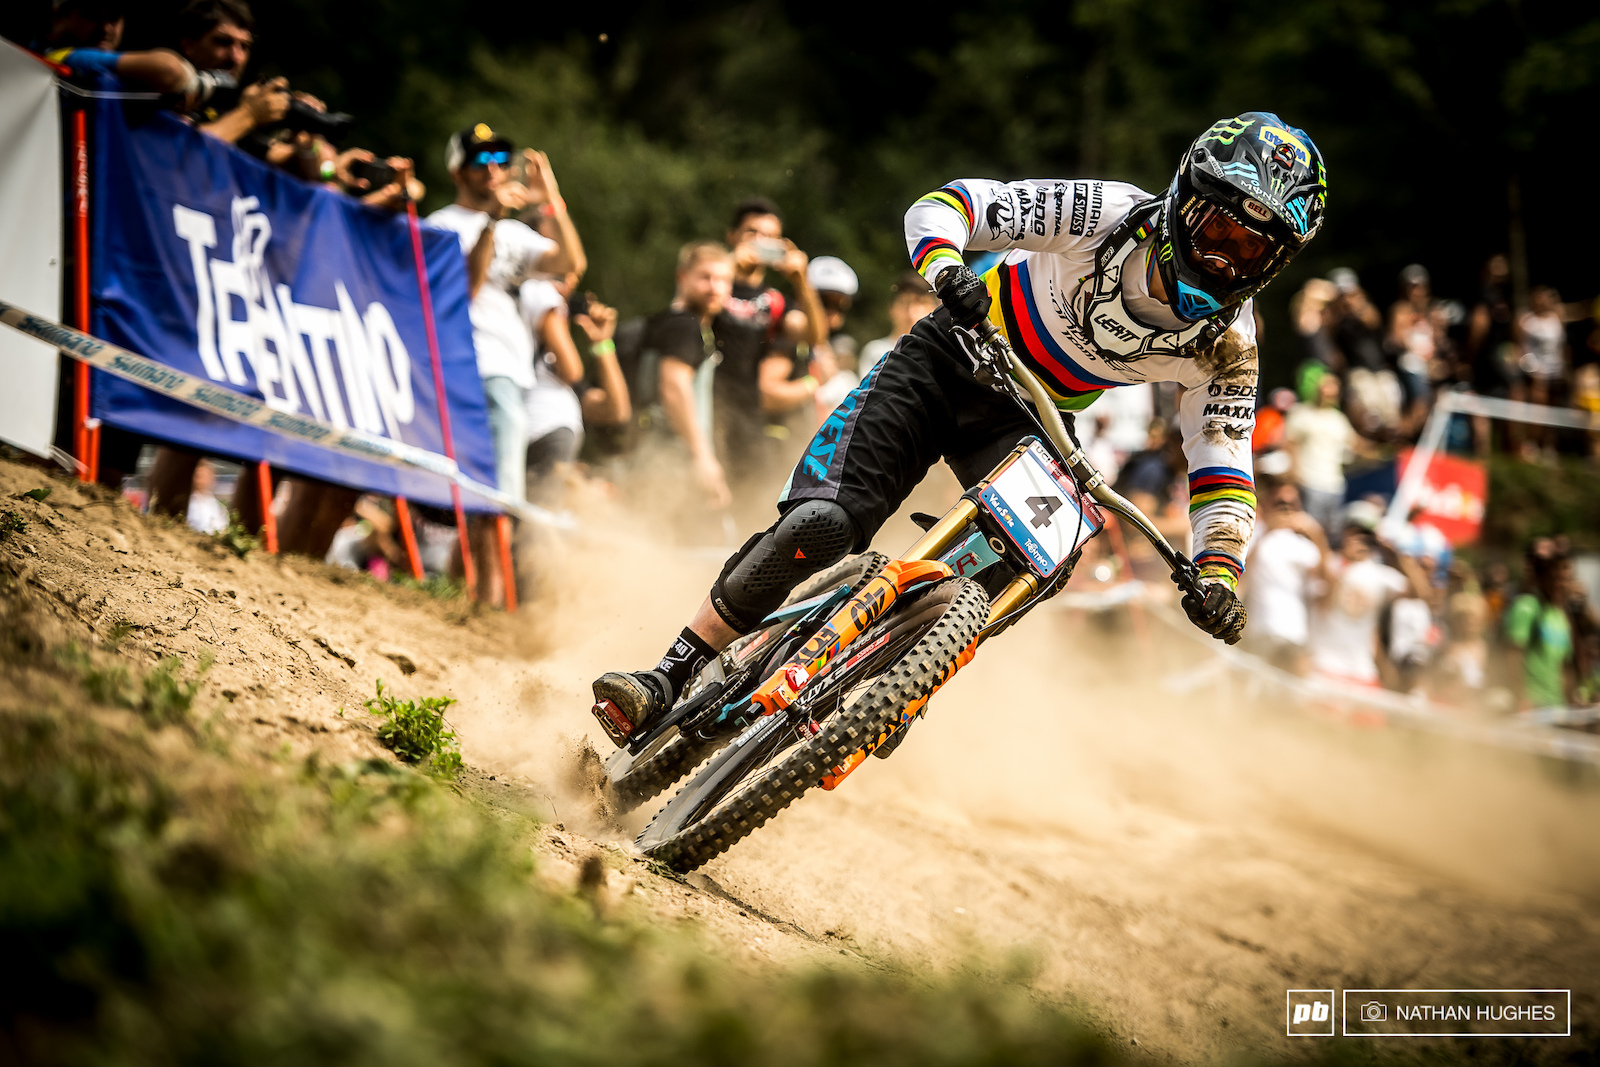 2017 Val Di Sole was nothing like 2016 Val Di Sole. Just ask Danny Hart.